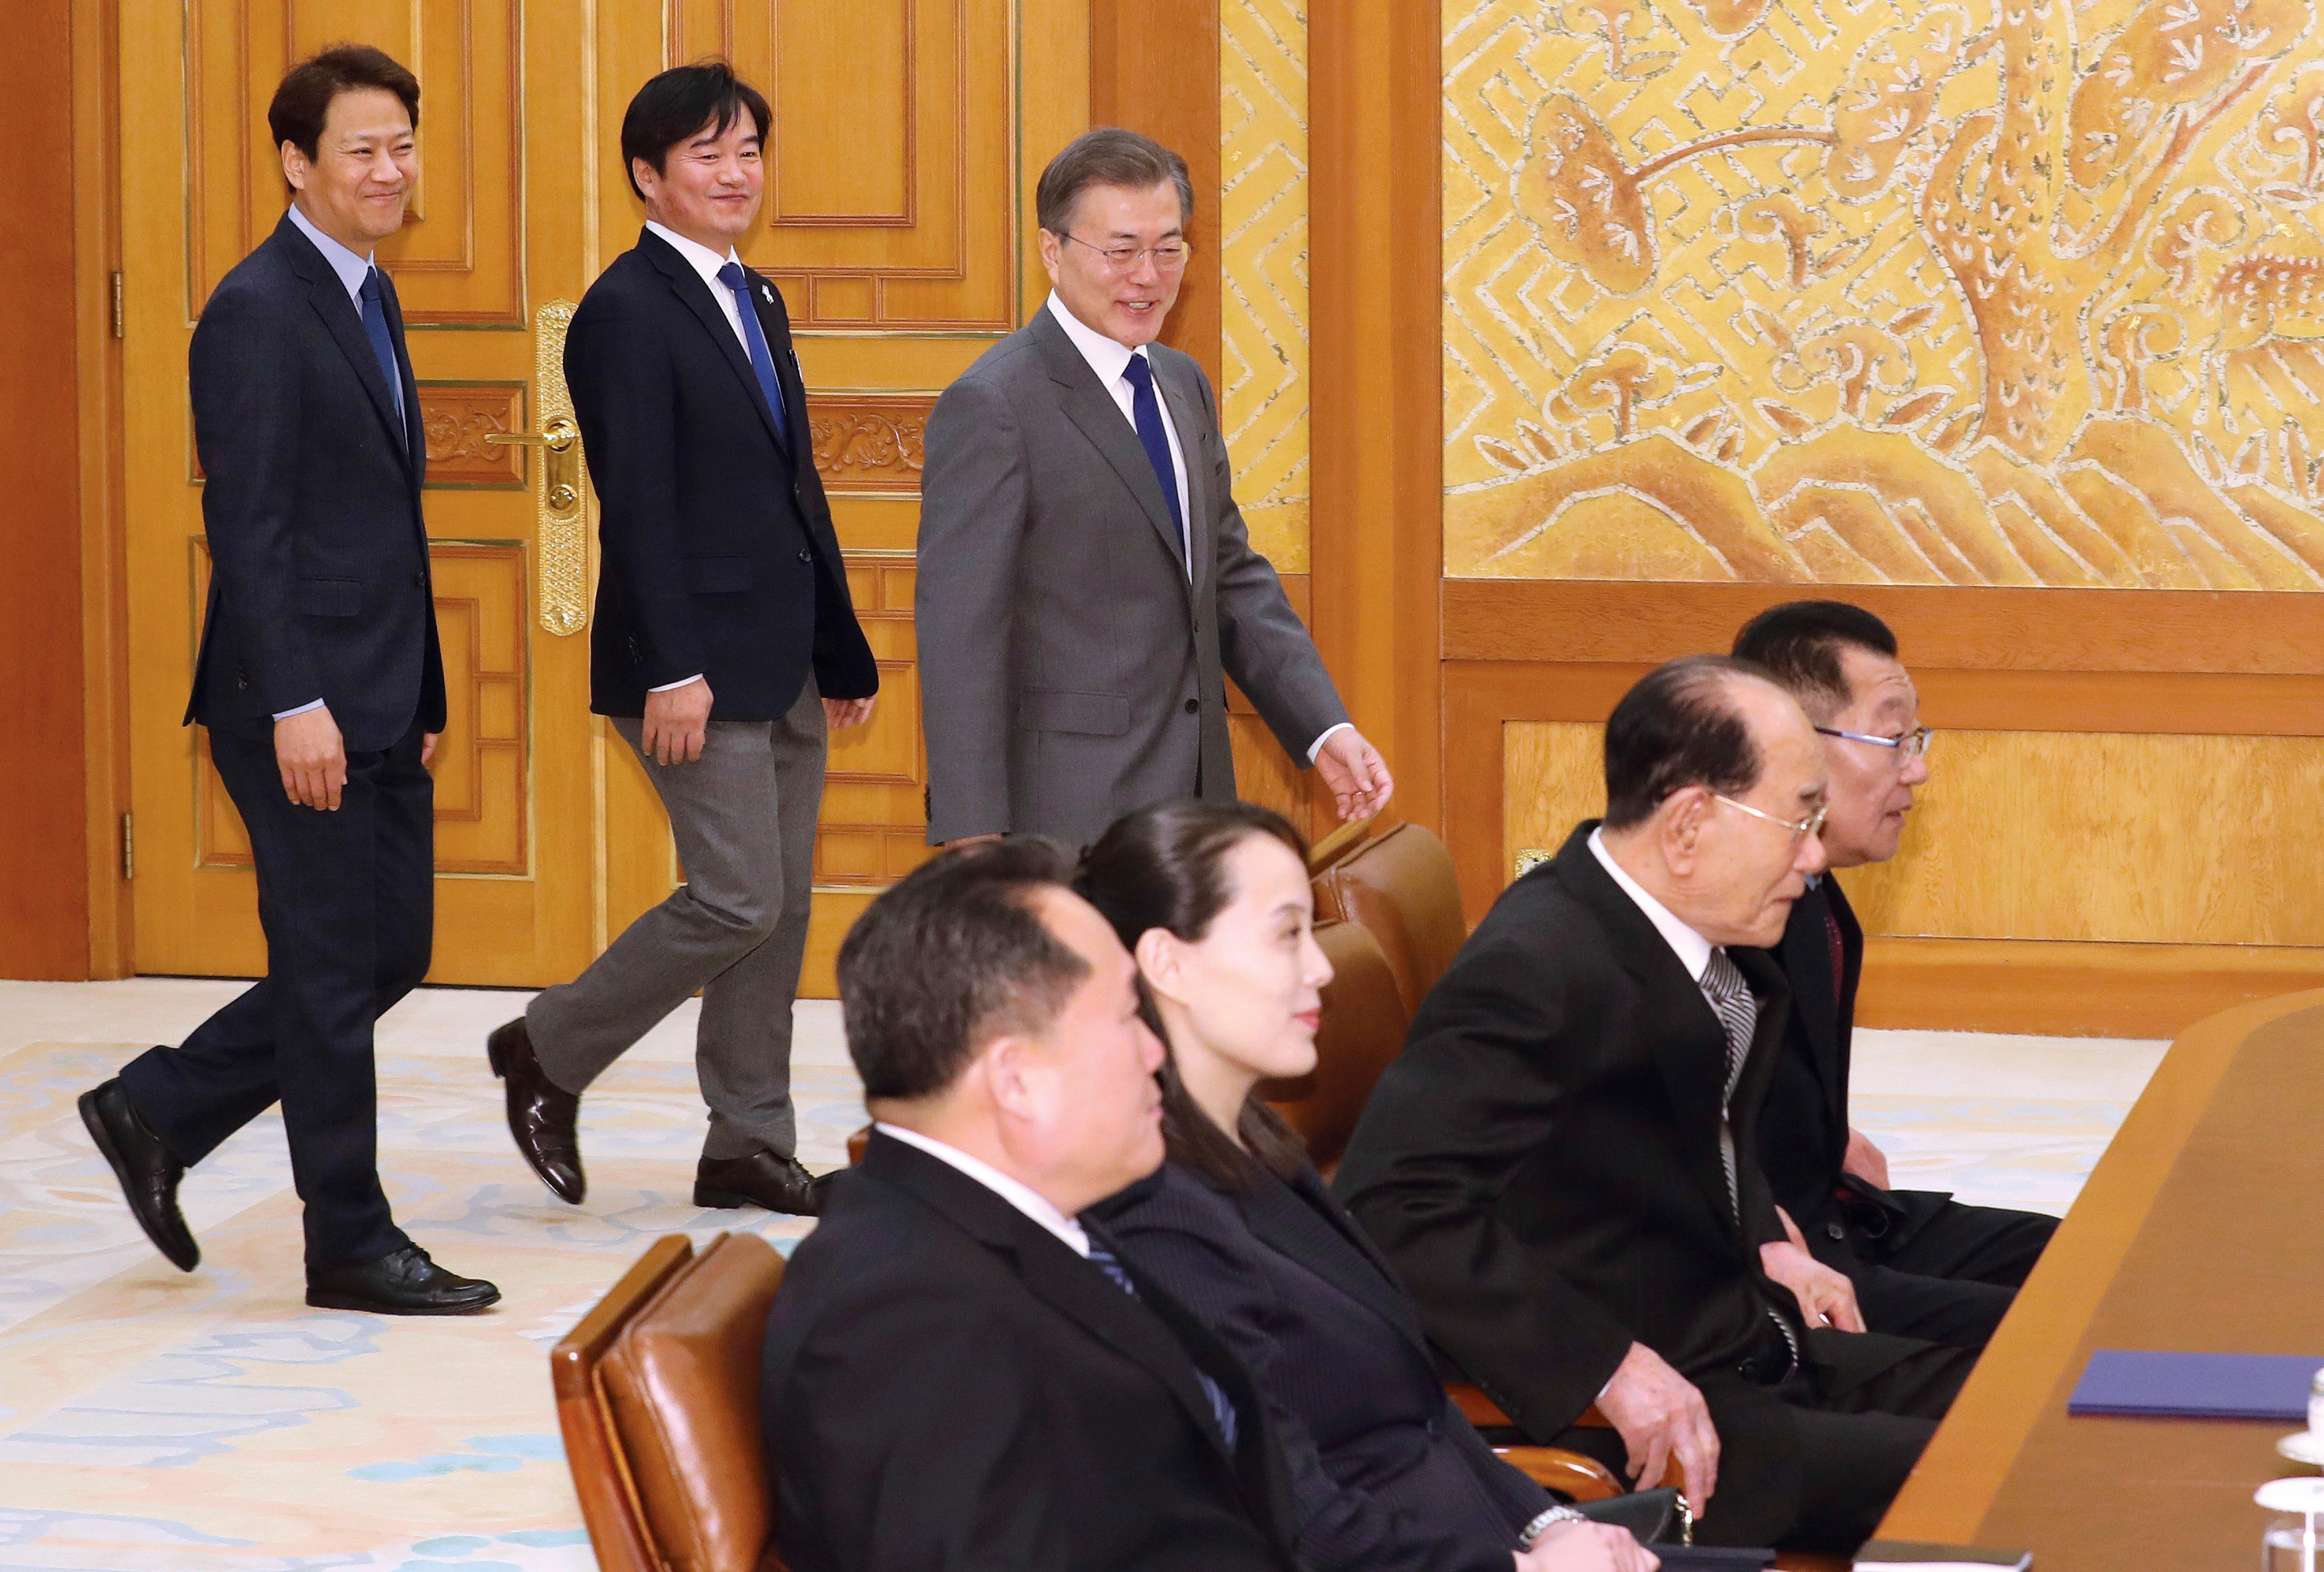 South Korean President Moon Jae-in, right rear, arrives to meet a North Korean delegation including Kim Yo Jong, second from left at front, sister of North Korean leader Kim Jong Un,  at the presidential house in Seoul, South Korea, Saturday, Feb. 10, 2018. President Moon on Saturday met with the senior North Korean officials over lunch at Seoul's presidential palace in the most significant diplomatic encounter between the rivals in years.(Kim Ju-sung/Yonhap via AP)